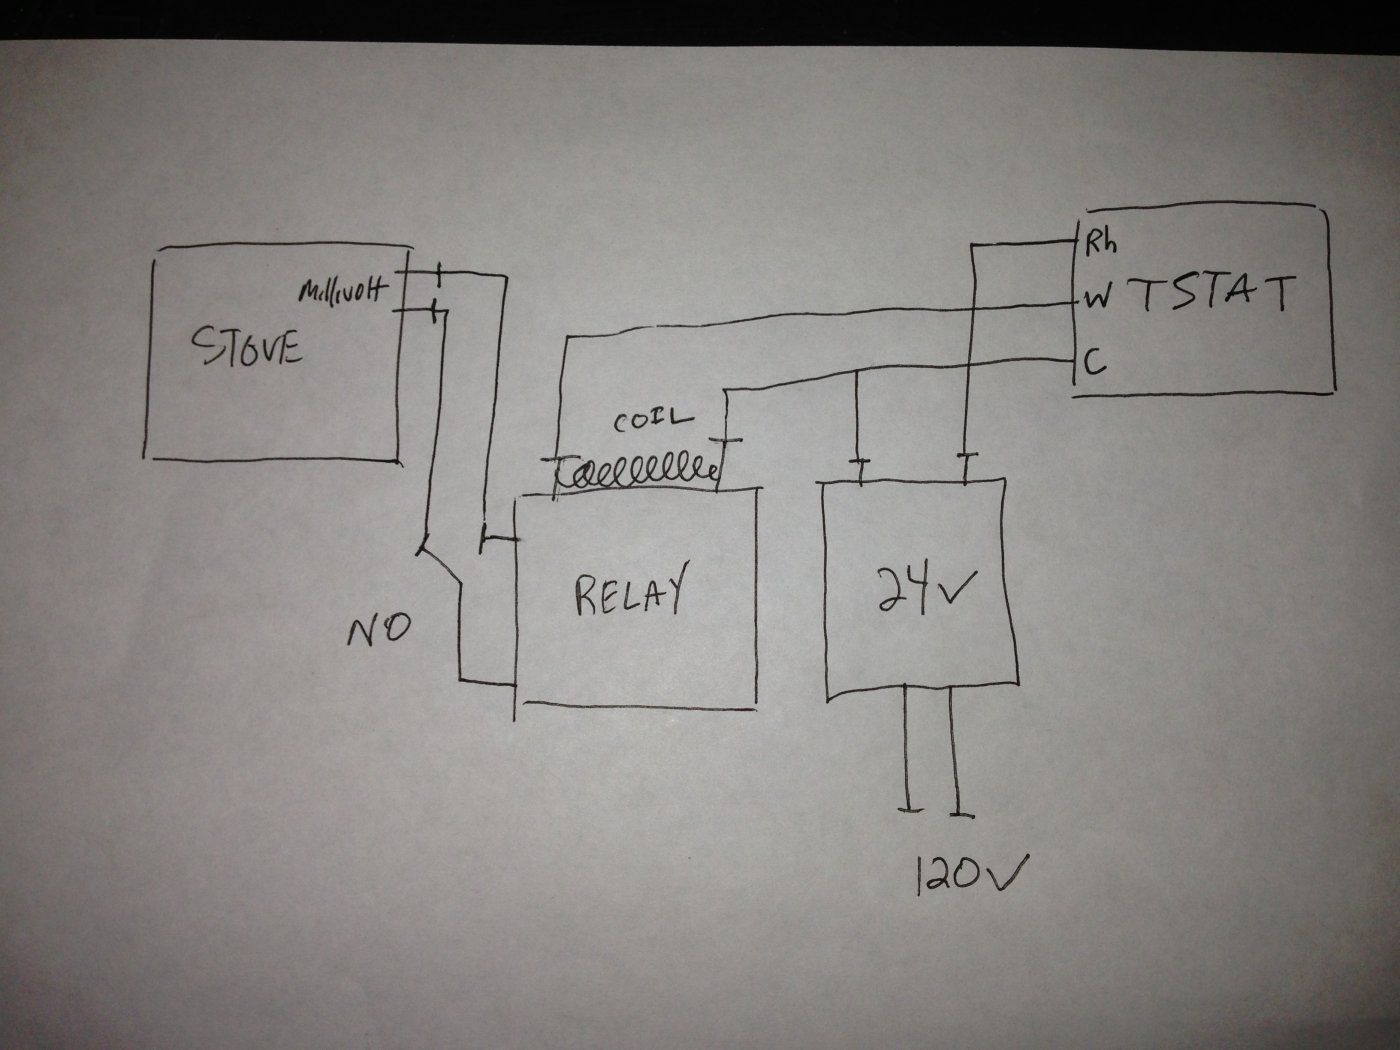 installing 24 volt wifi thermostat on millivolt stoves page 4 edwards 592 transformer wiring diagram at love-stories.co